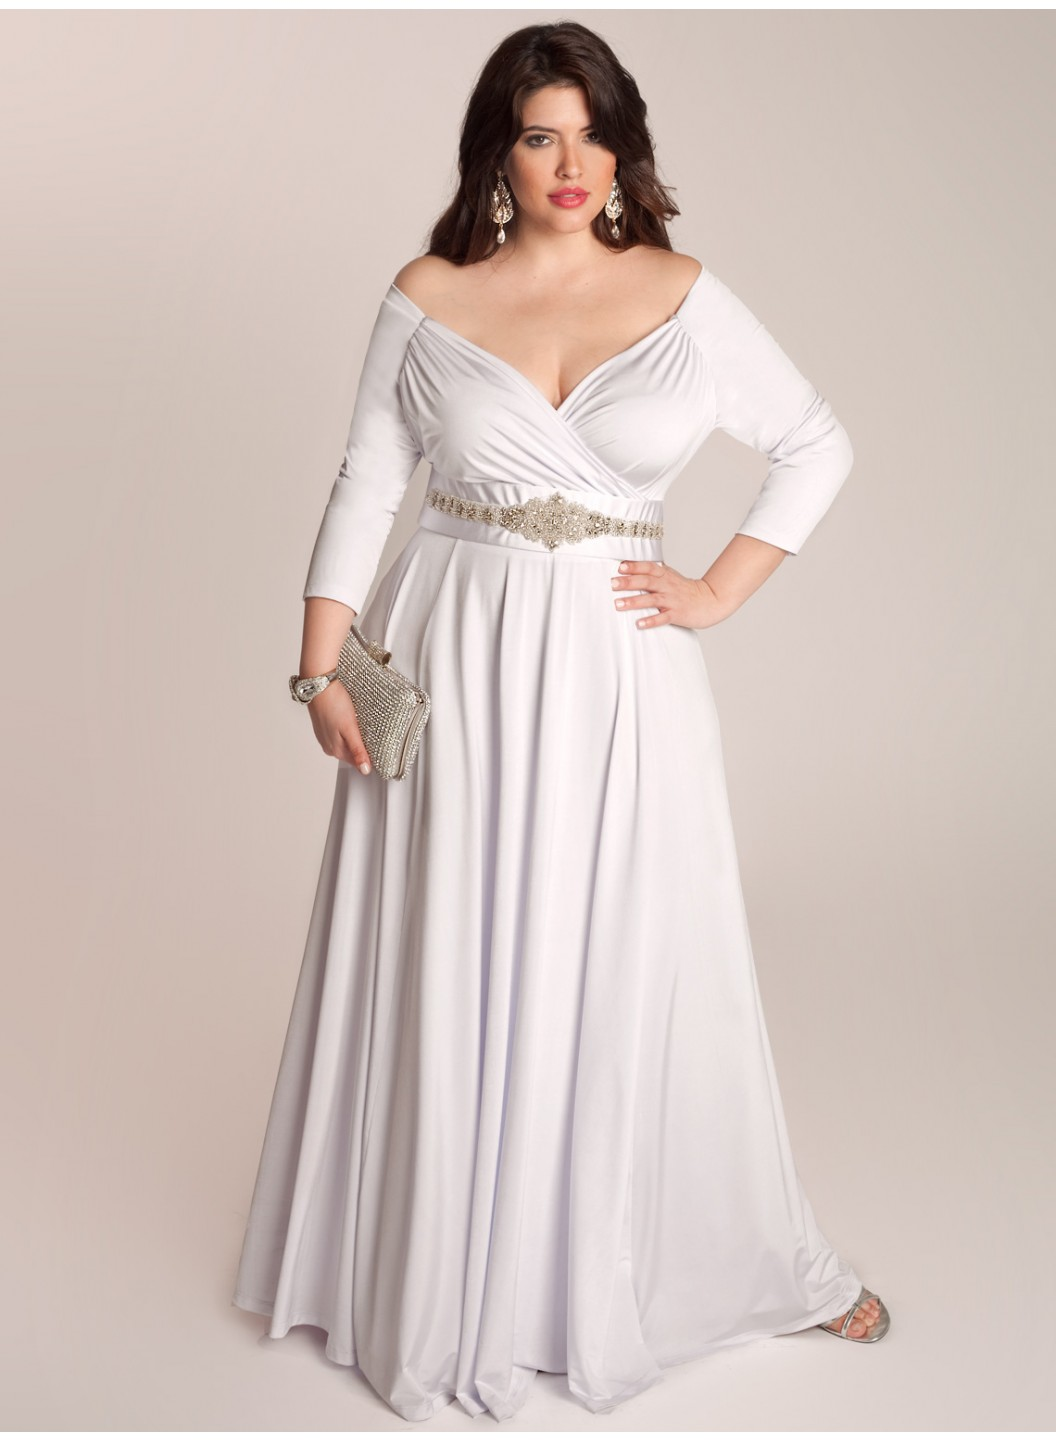 The Best Choose For Curvy Brides Plus Size Wedding Dresses Plus